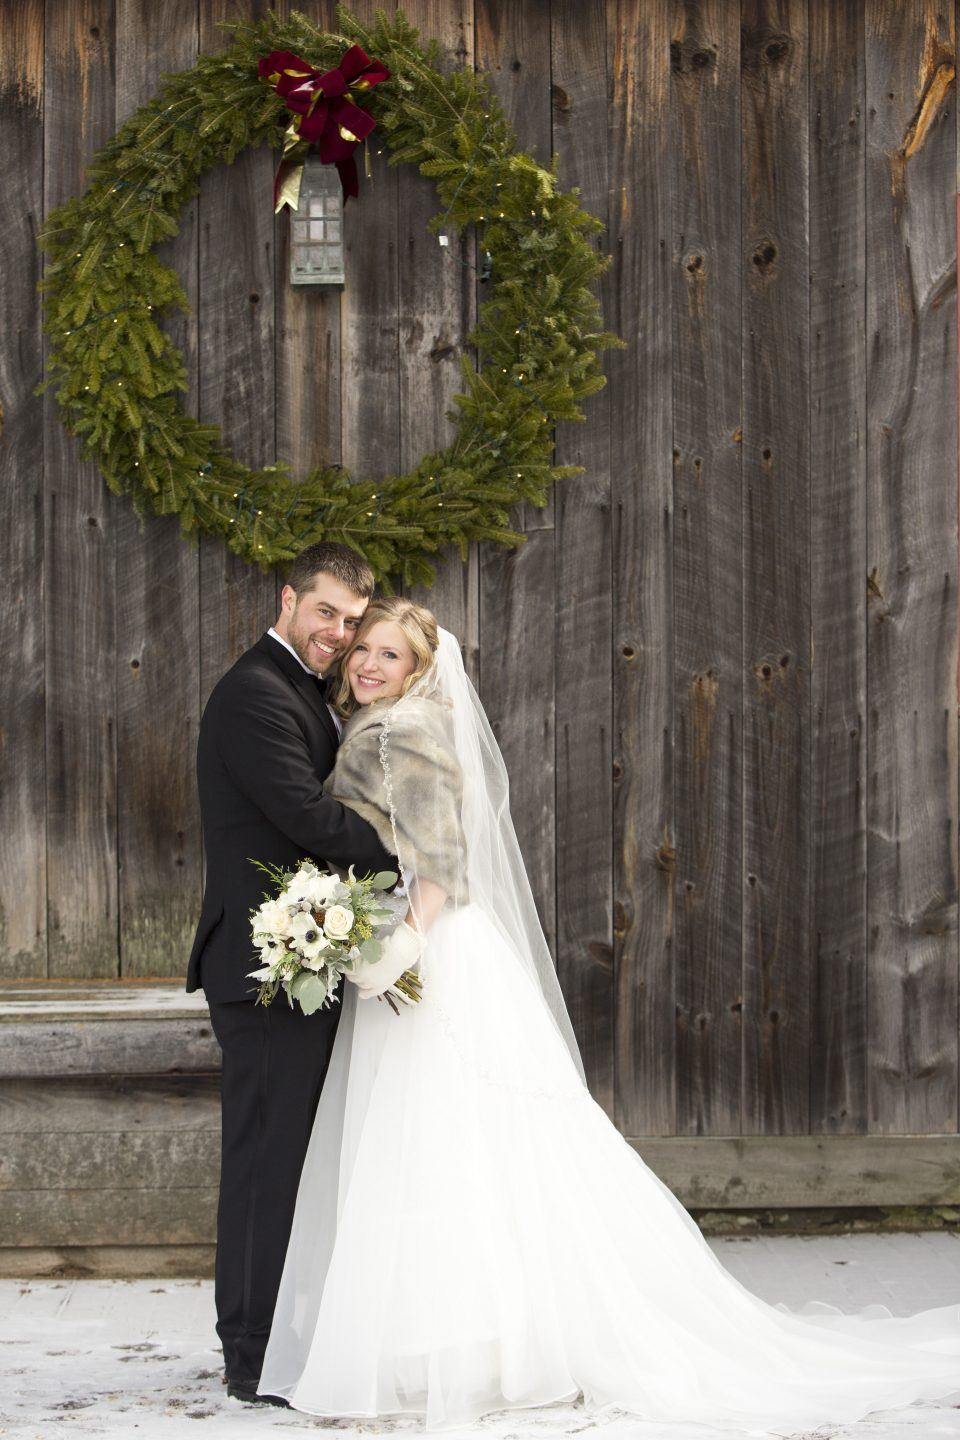 A bride and groom pose outside in front of a large wreath